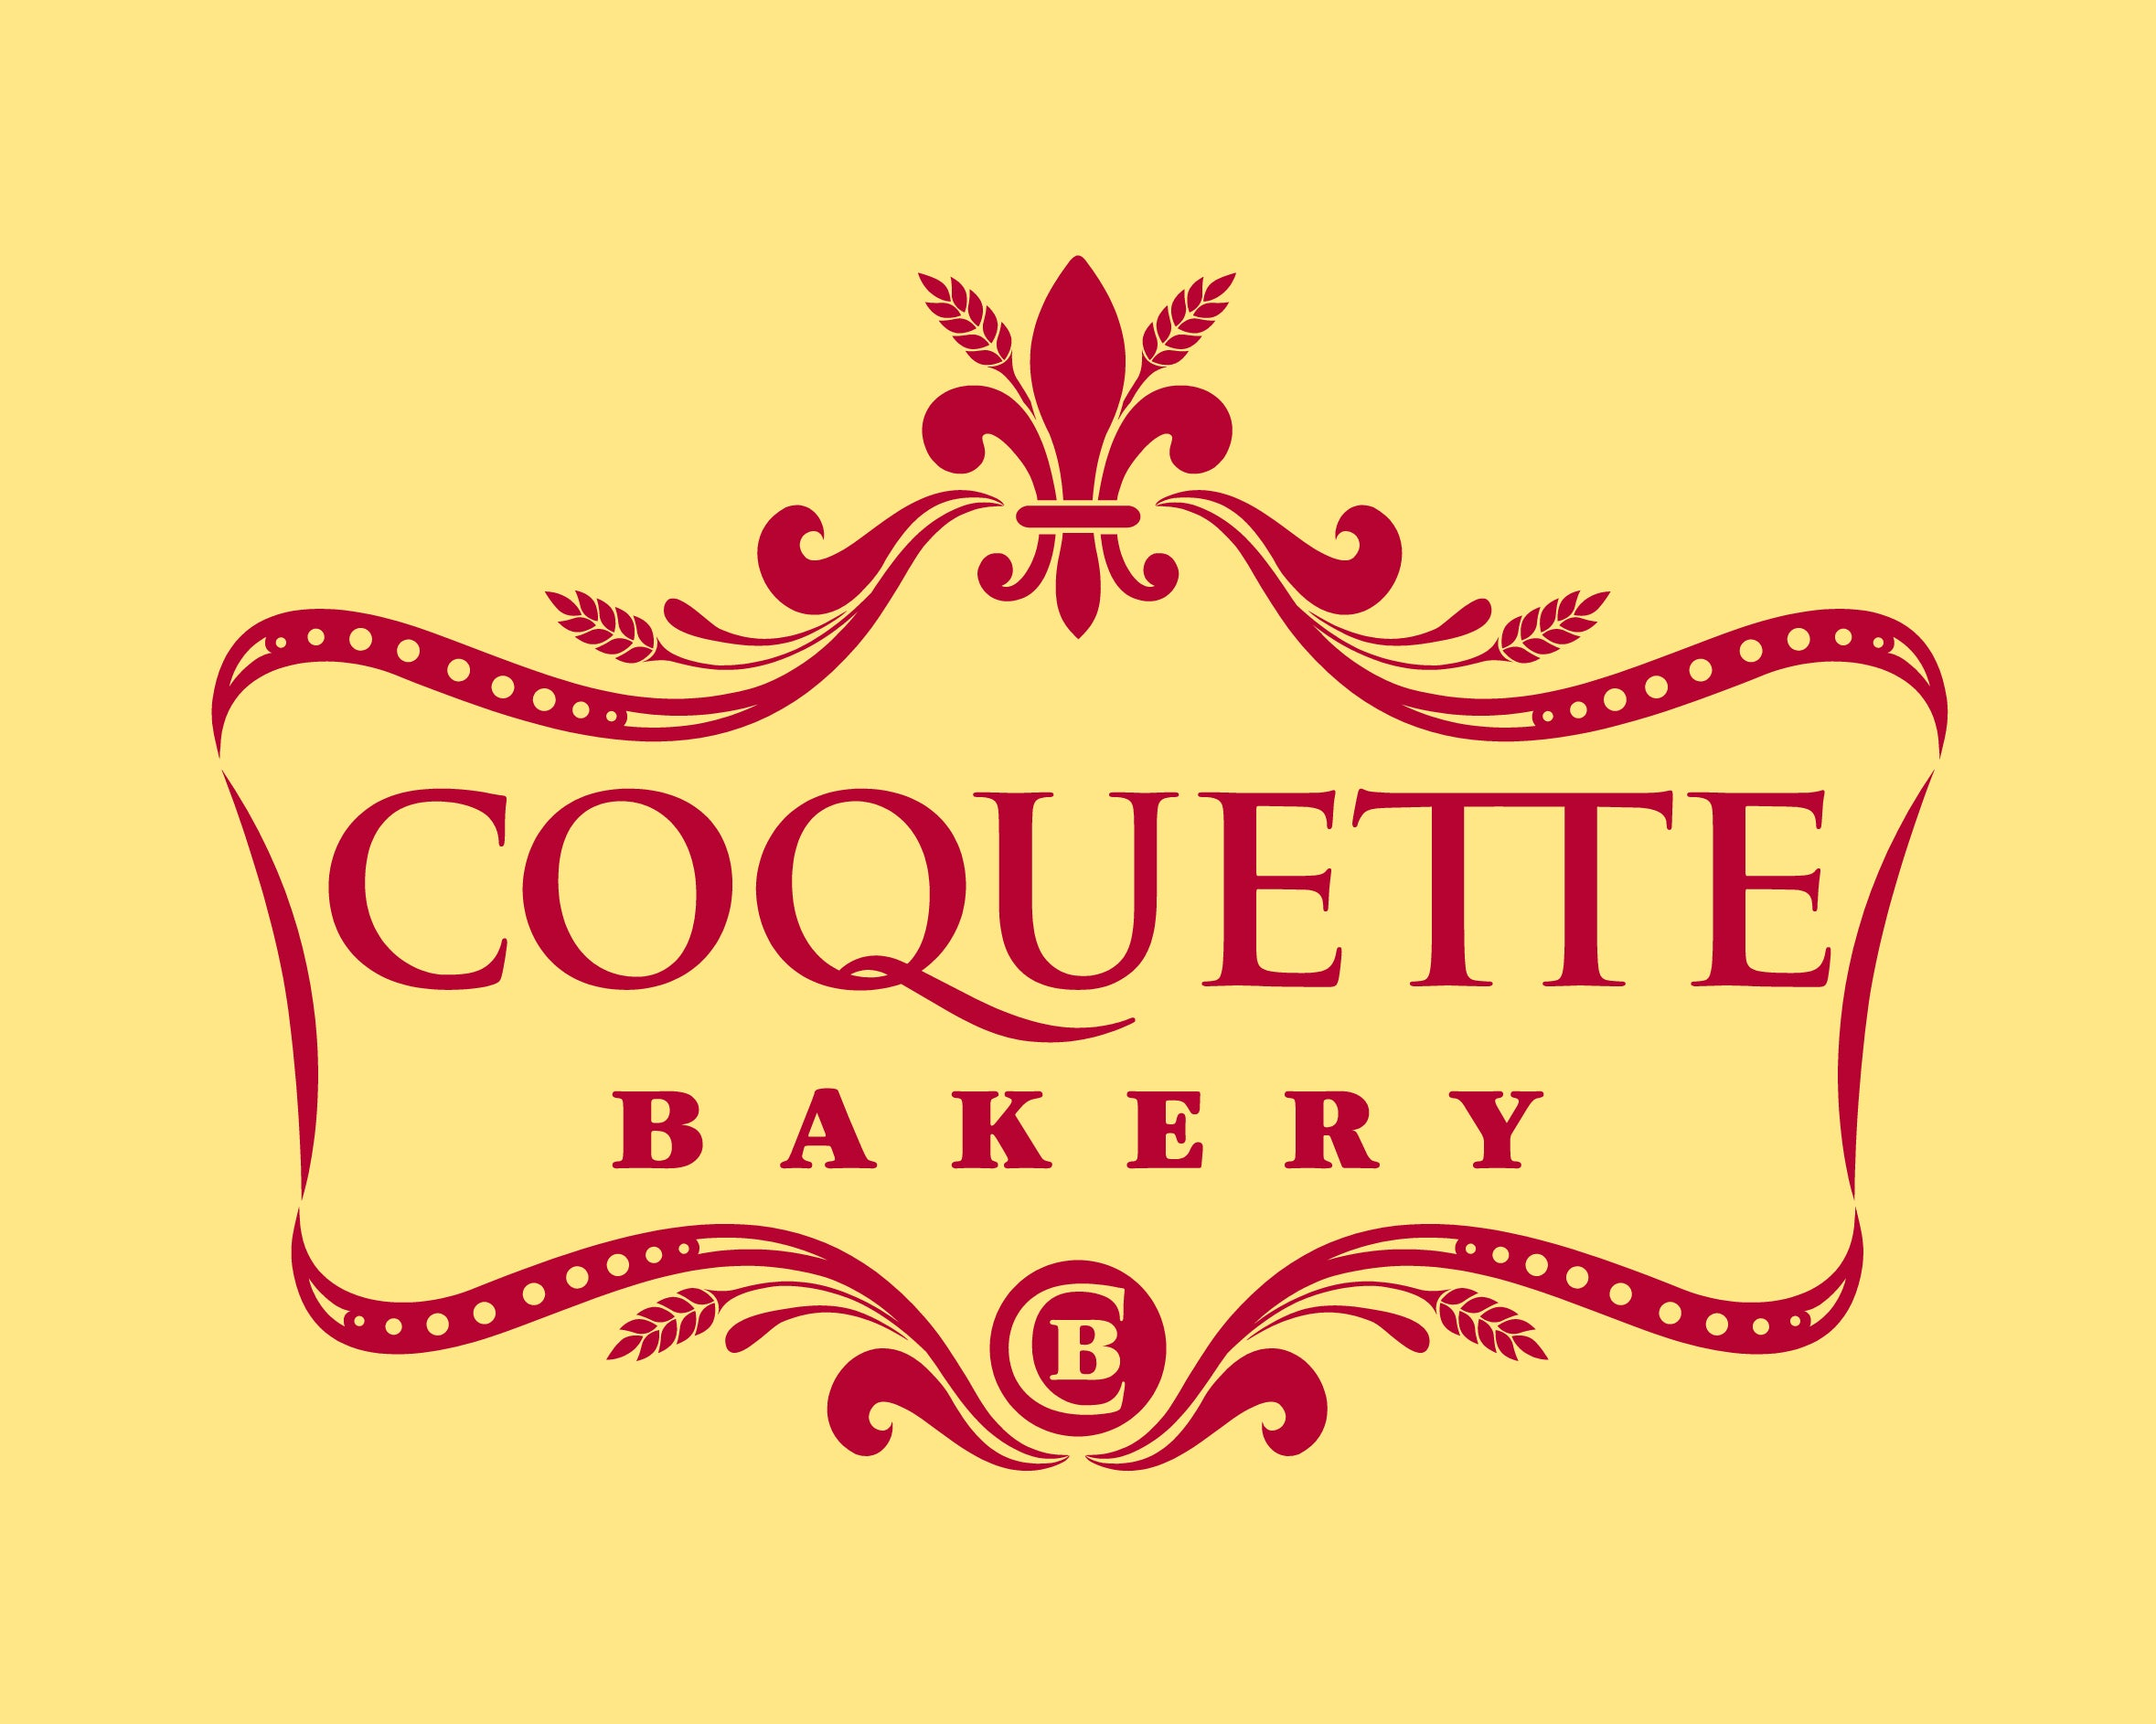 Coquette Bakery